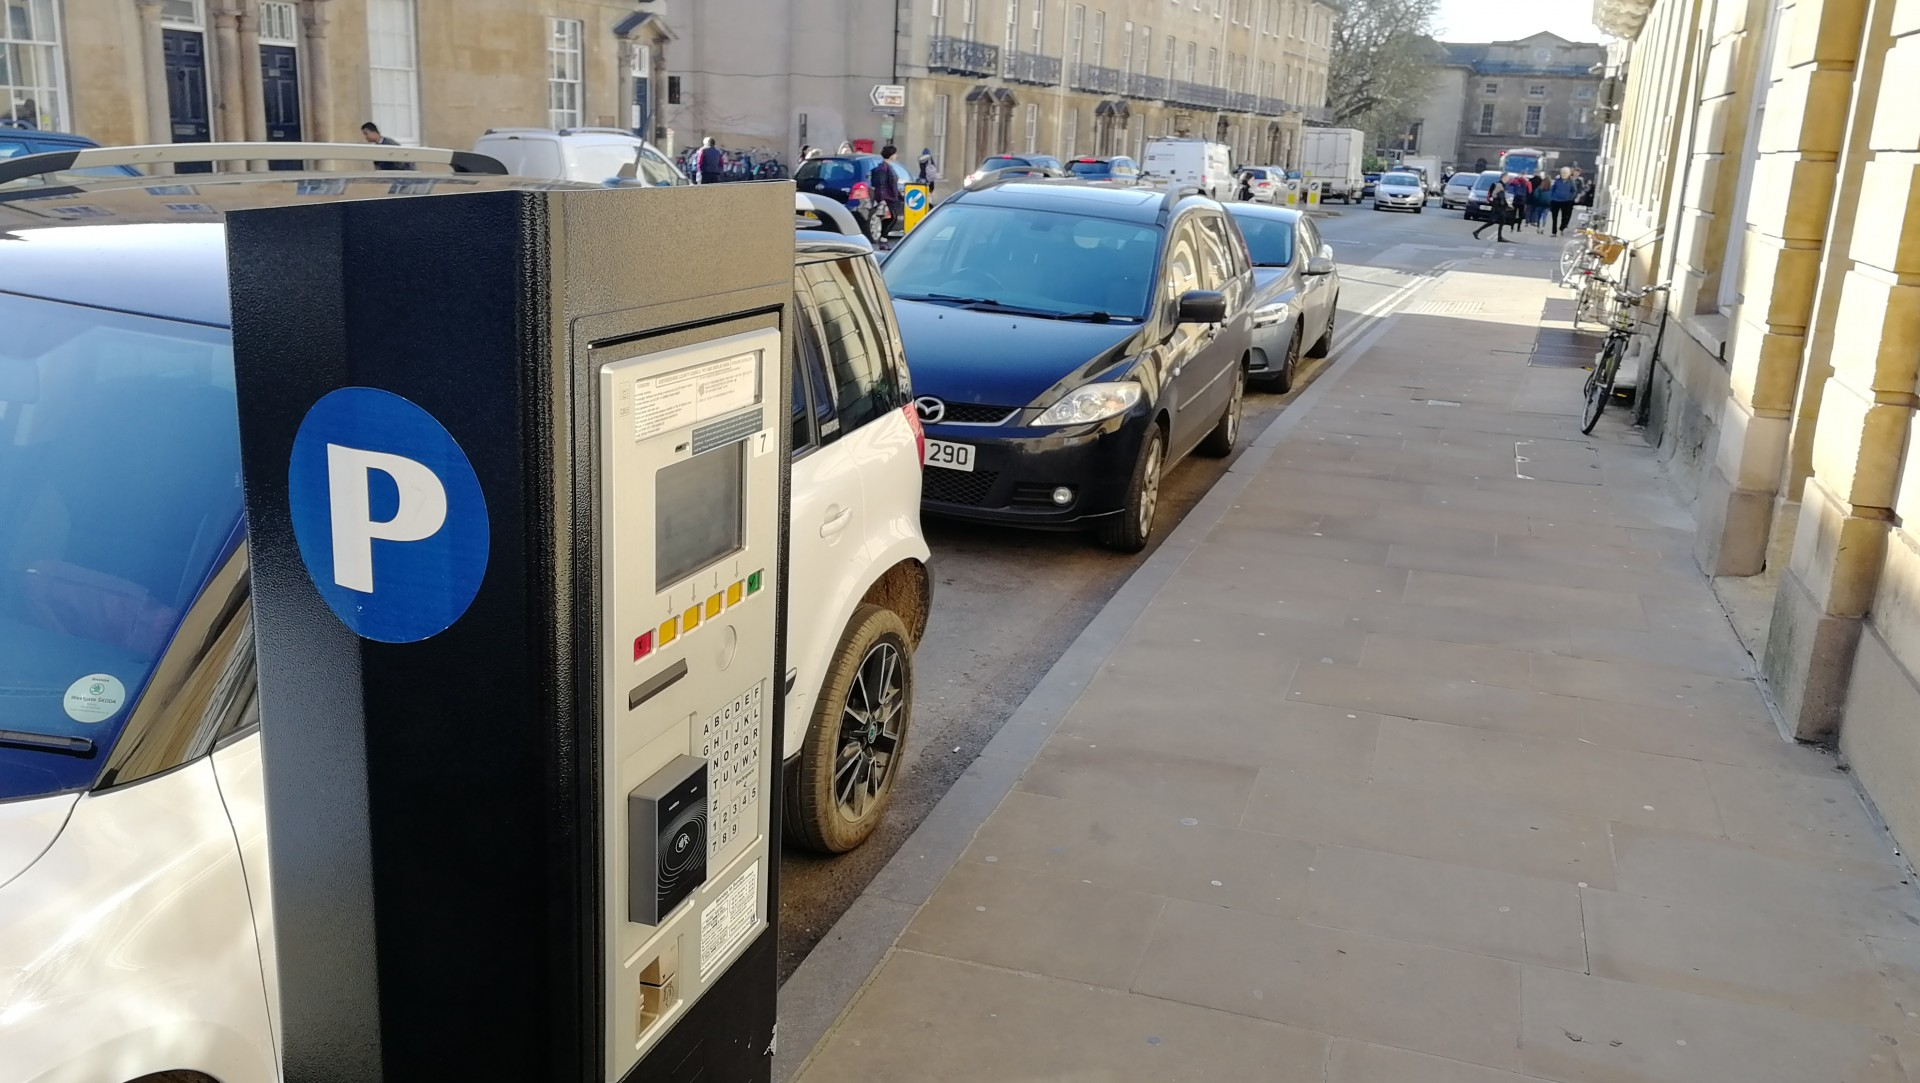 Civil parking enforcement already takes place in Oxford